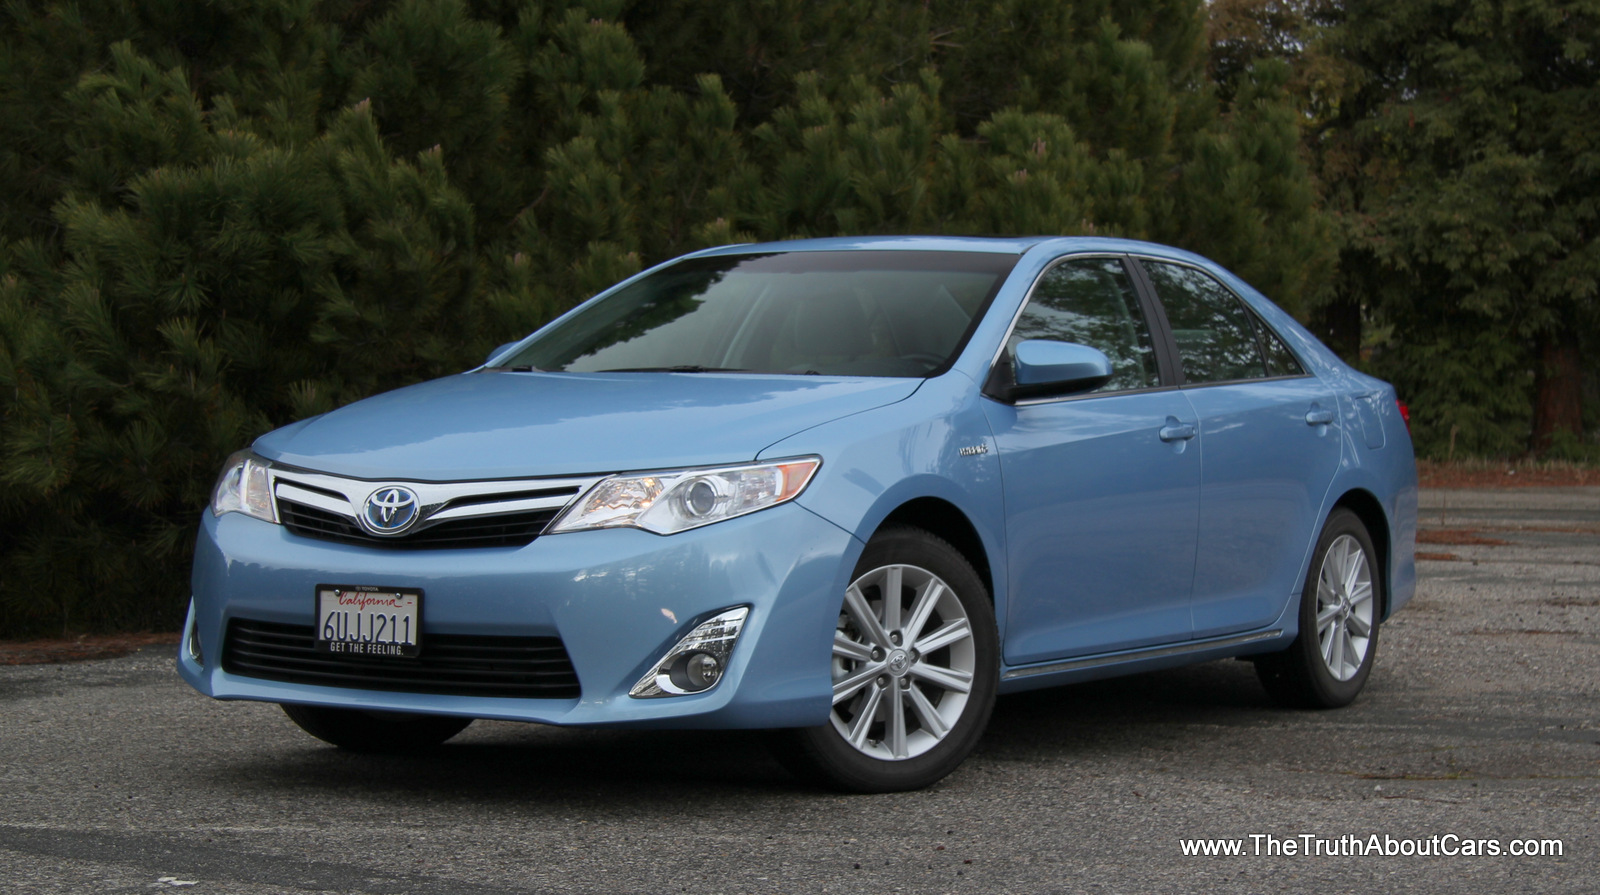 toyota camry hybrid 2012 2012 toyota camry hybrid first drive photo gallery autoblog 2012. Black Bedroom Furniture Sets. Home Design Ideas